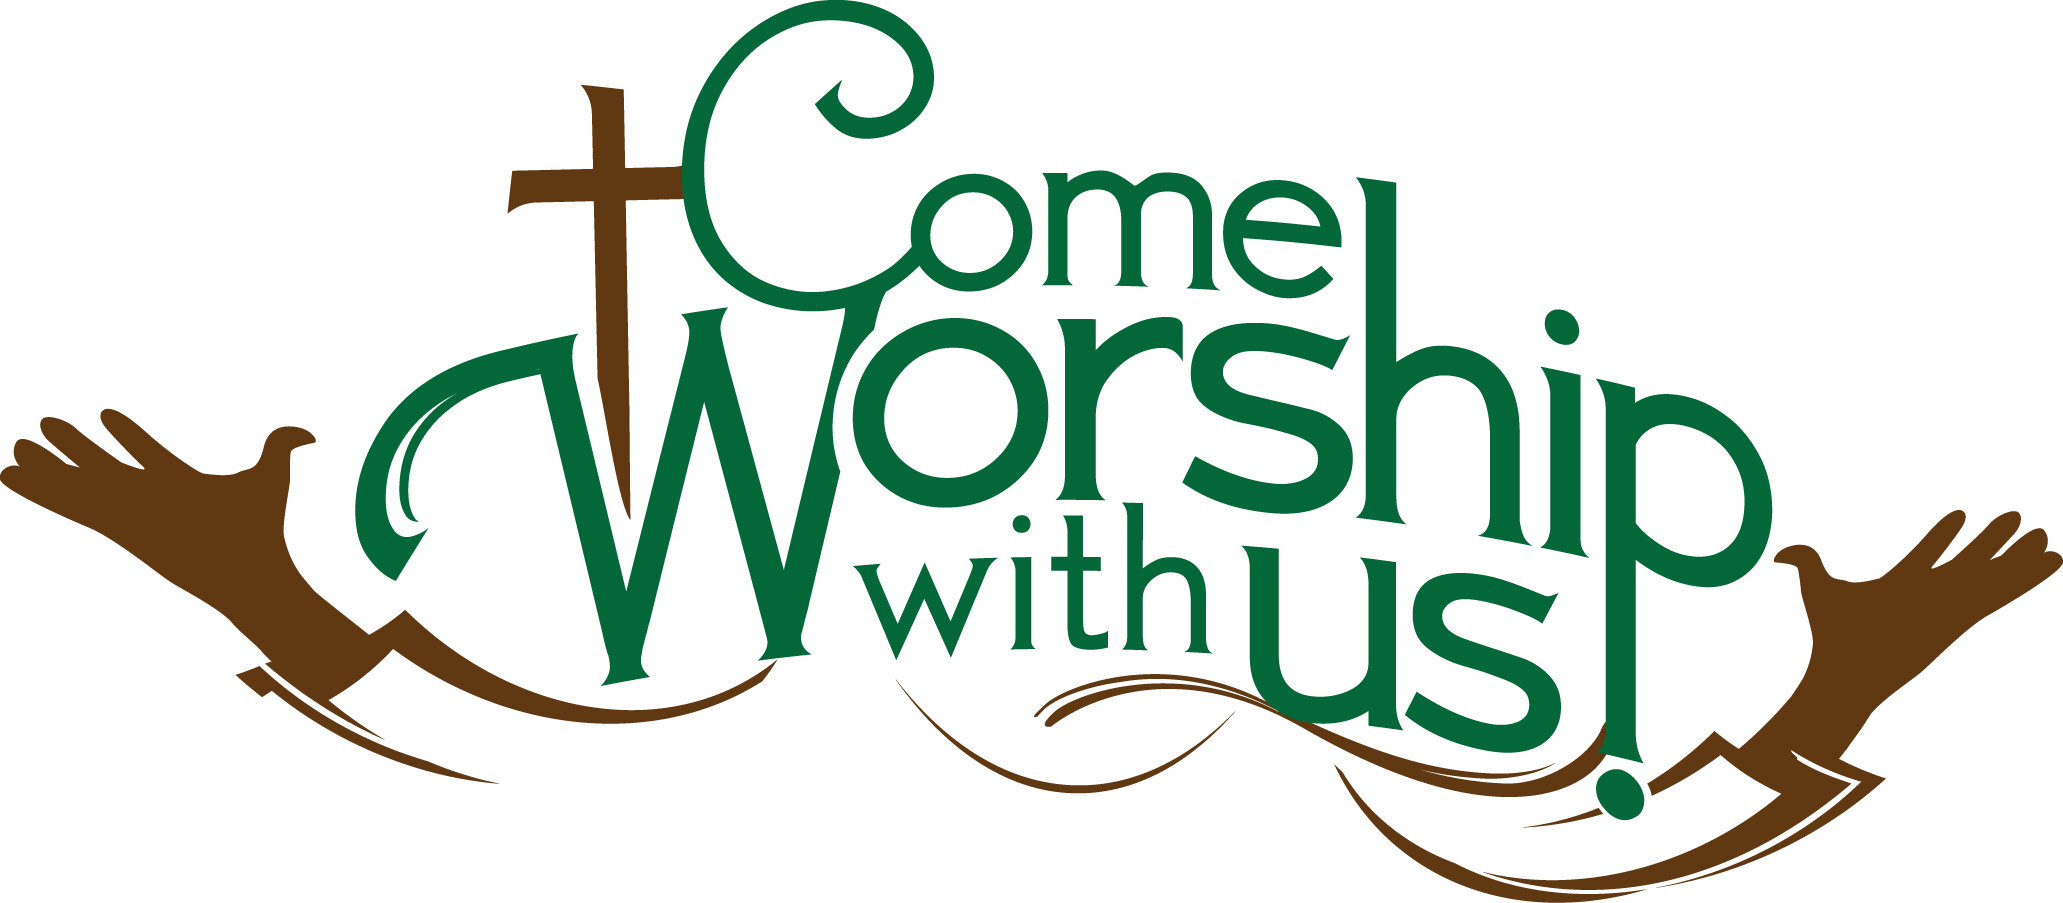 Easter clipart worship. Church welcome free download